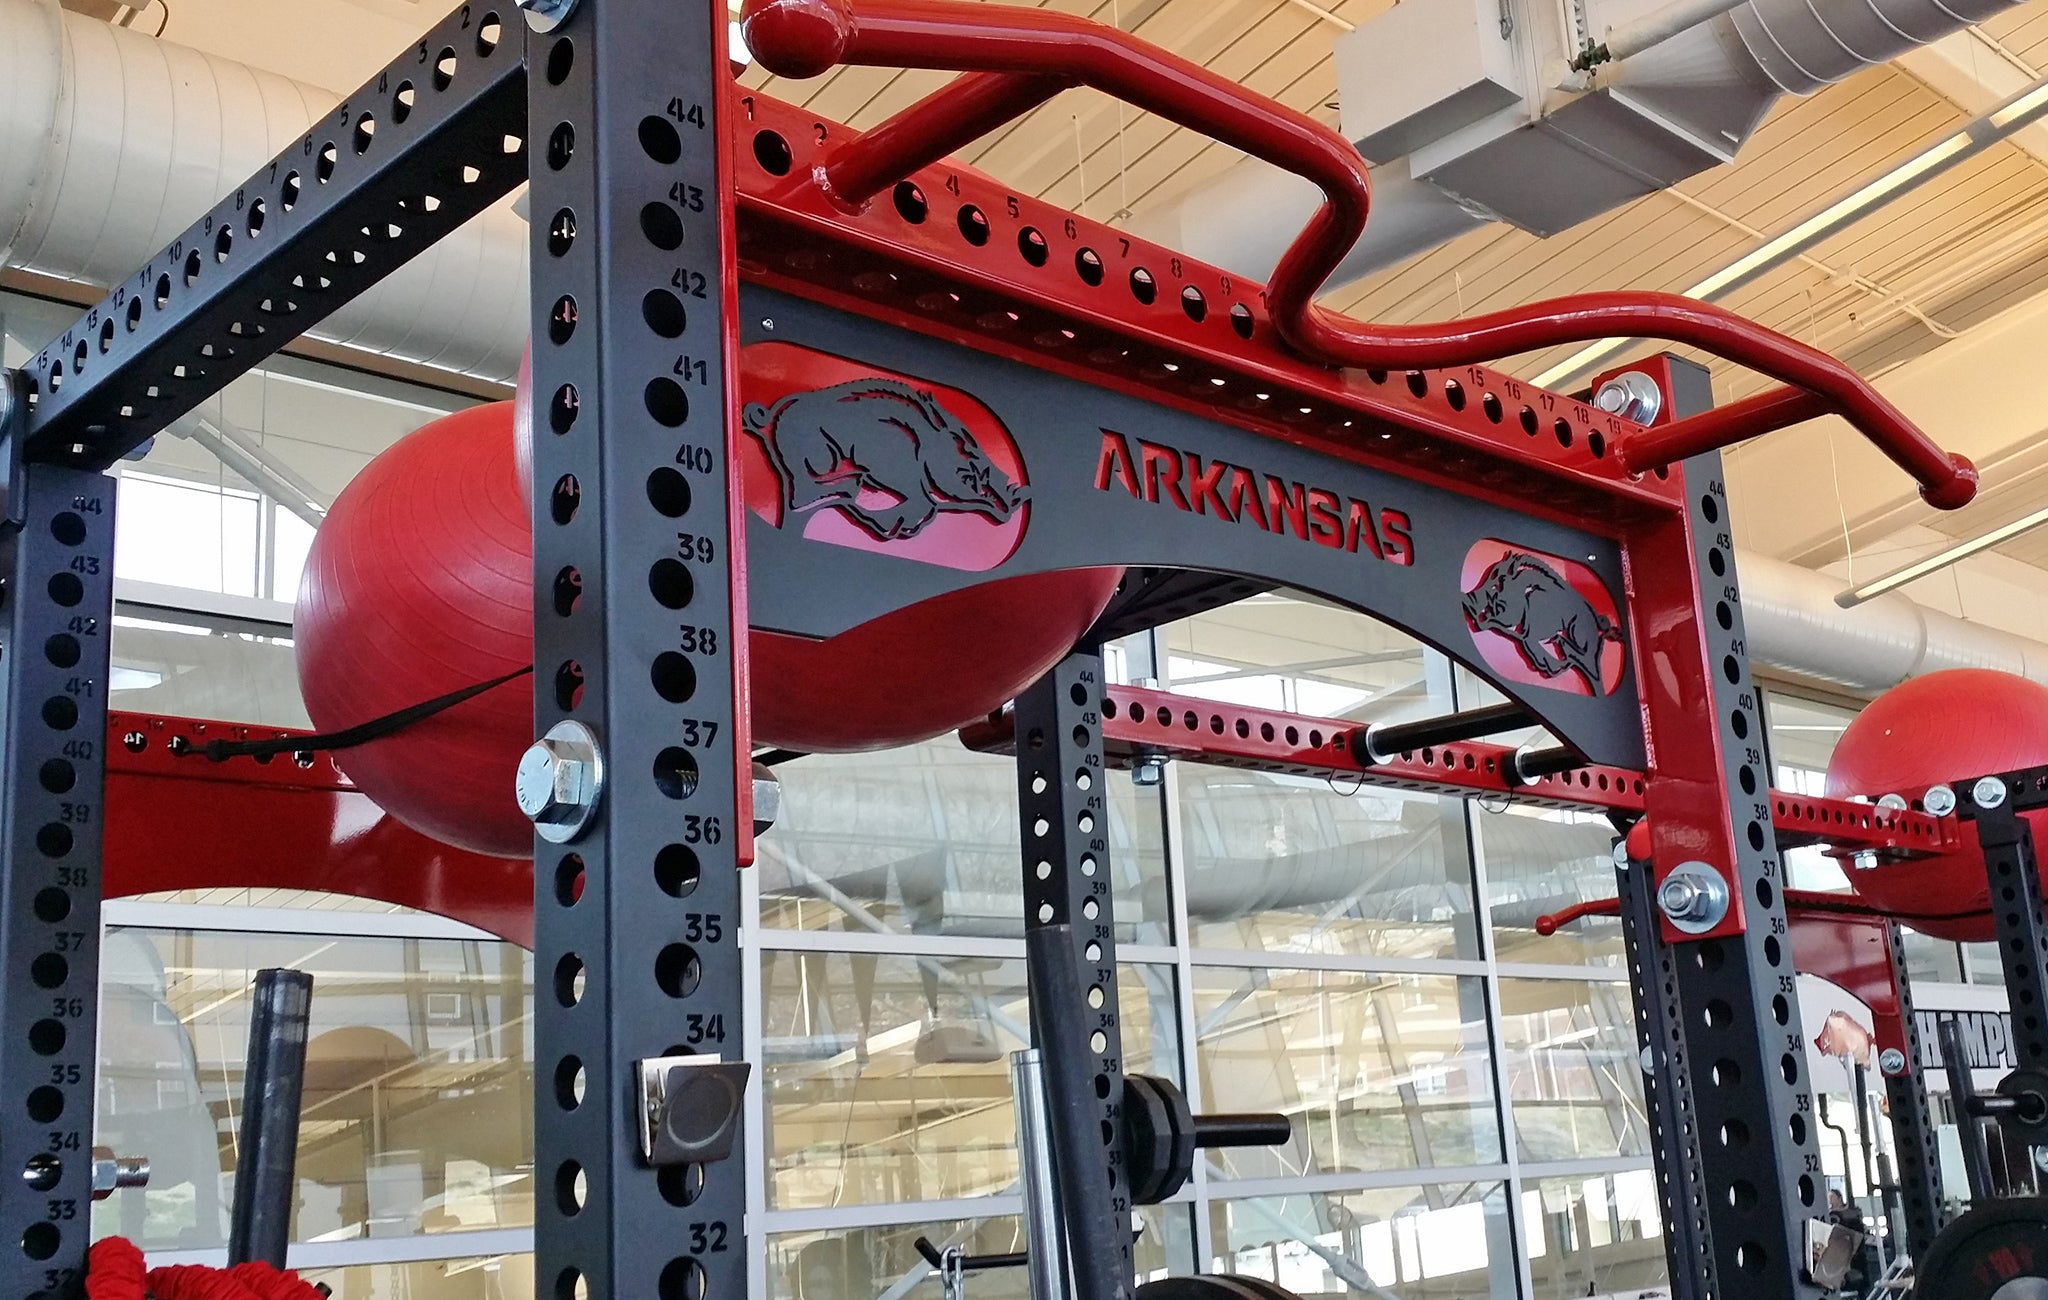 Arkansas weight room